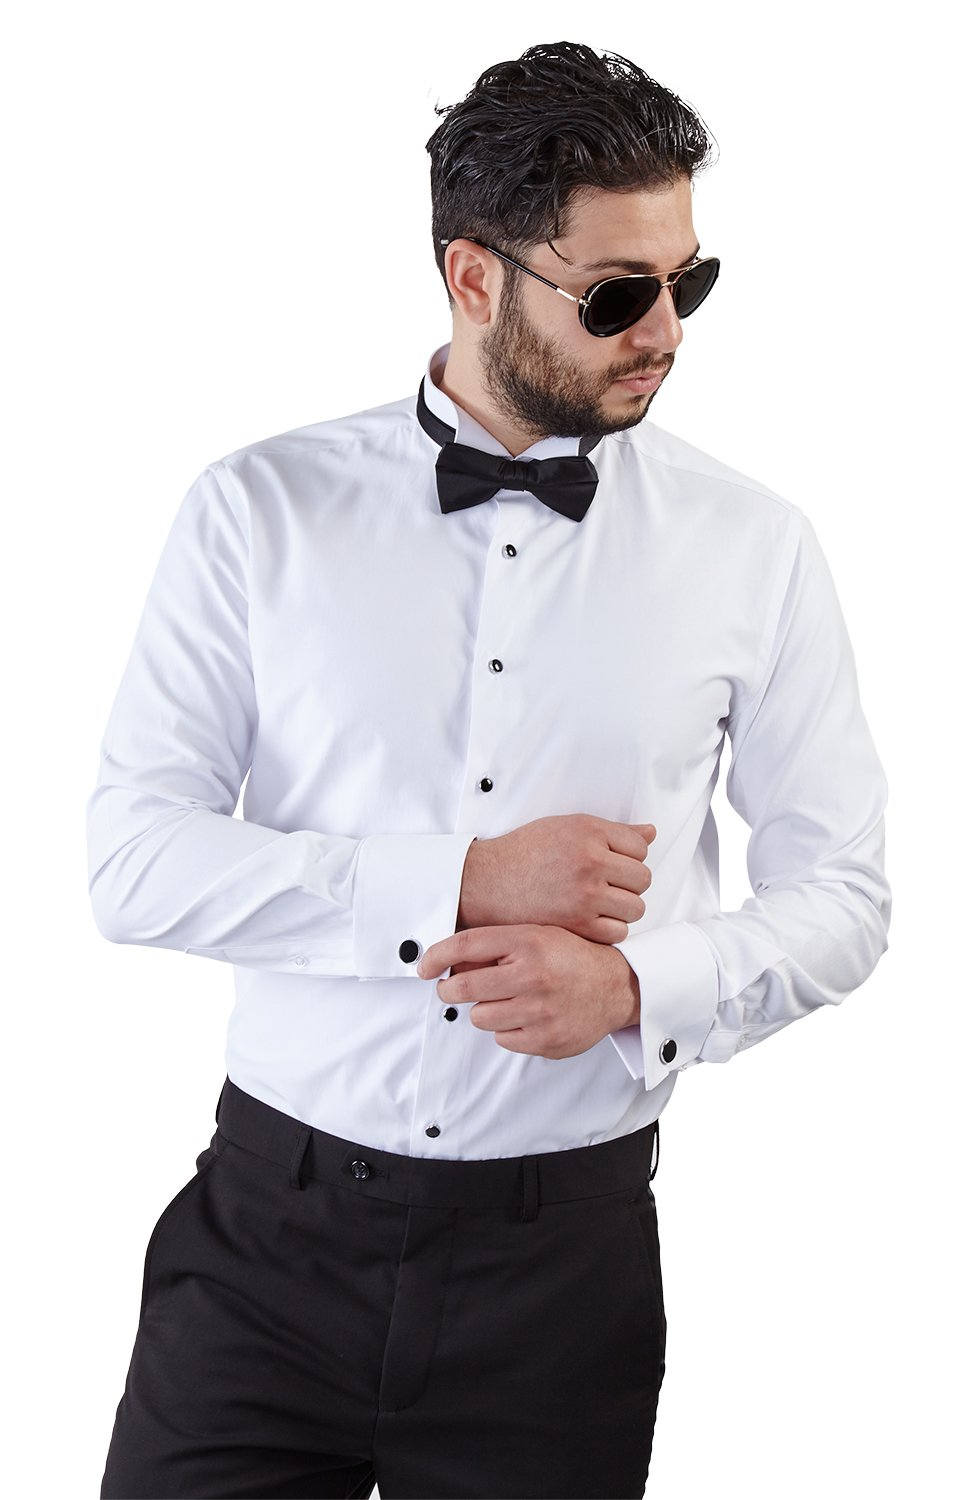 New Mens Tailored Slim Fit White Wing Tip Tuxedo Shirt French Cuff Wrinkle Free by Azar (Medium 15/15.5) by AZAR MAN